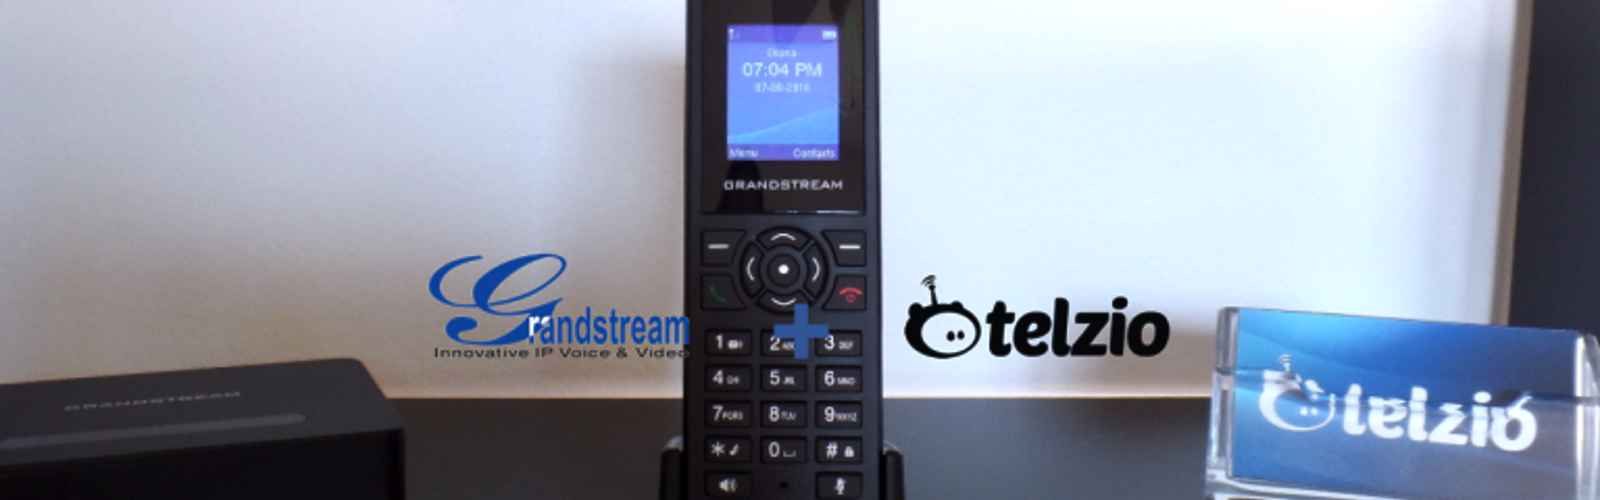 8 Things that makes the Grandstream DP720 Great